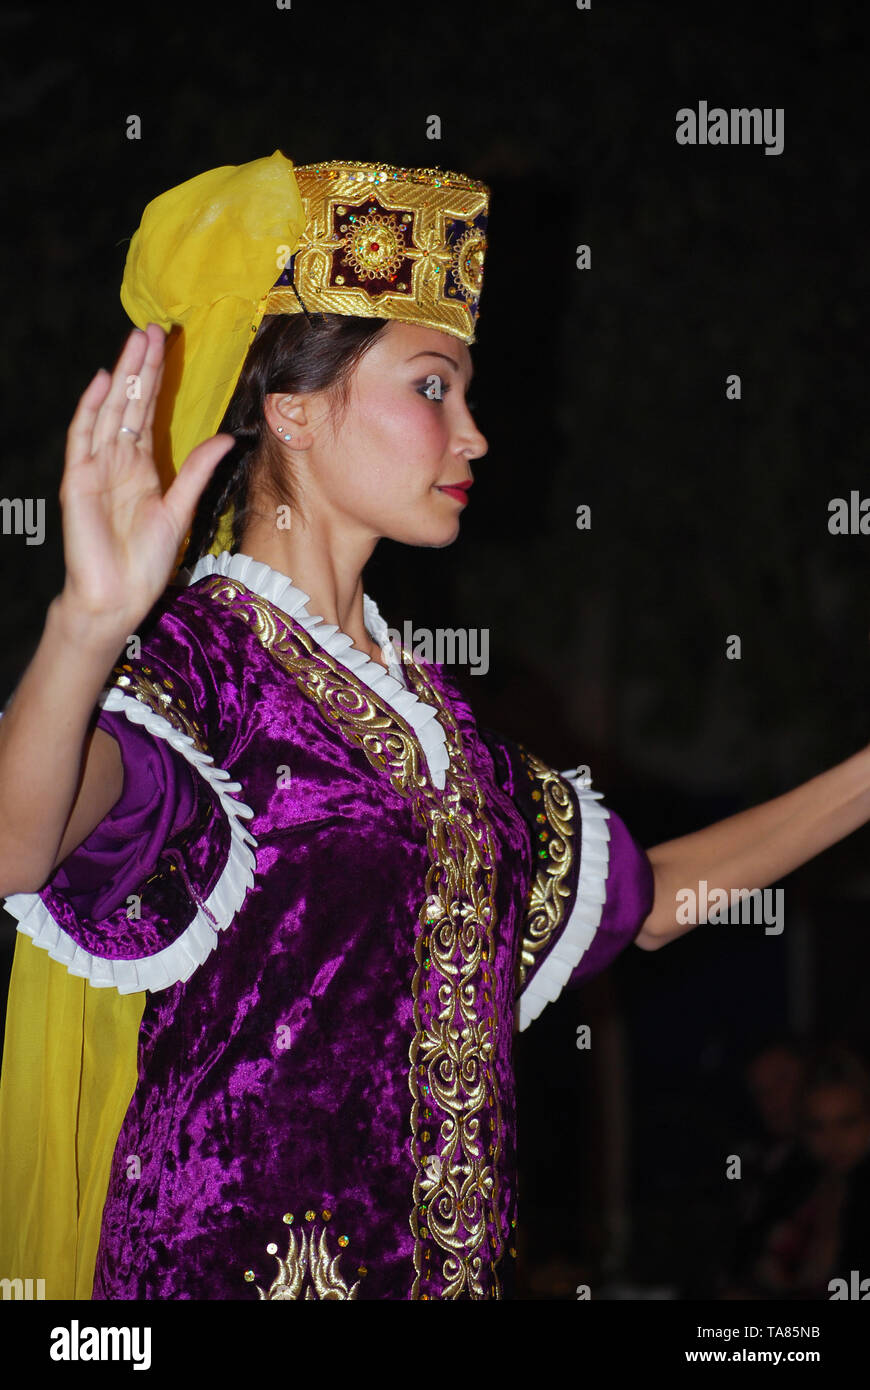 Woman in traditional costume, Bukhara - Uzbekistan. © Antonio Ciufo - Stock Image